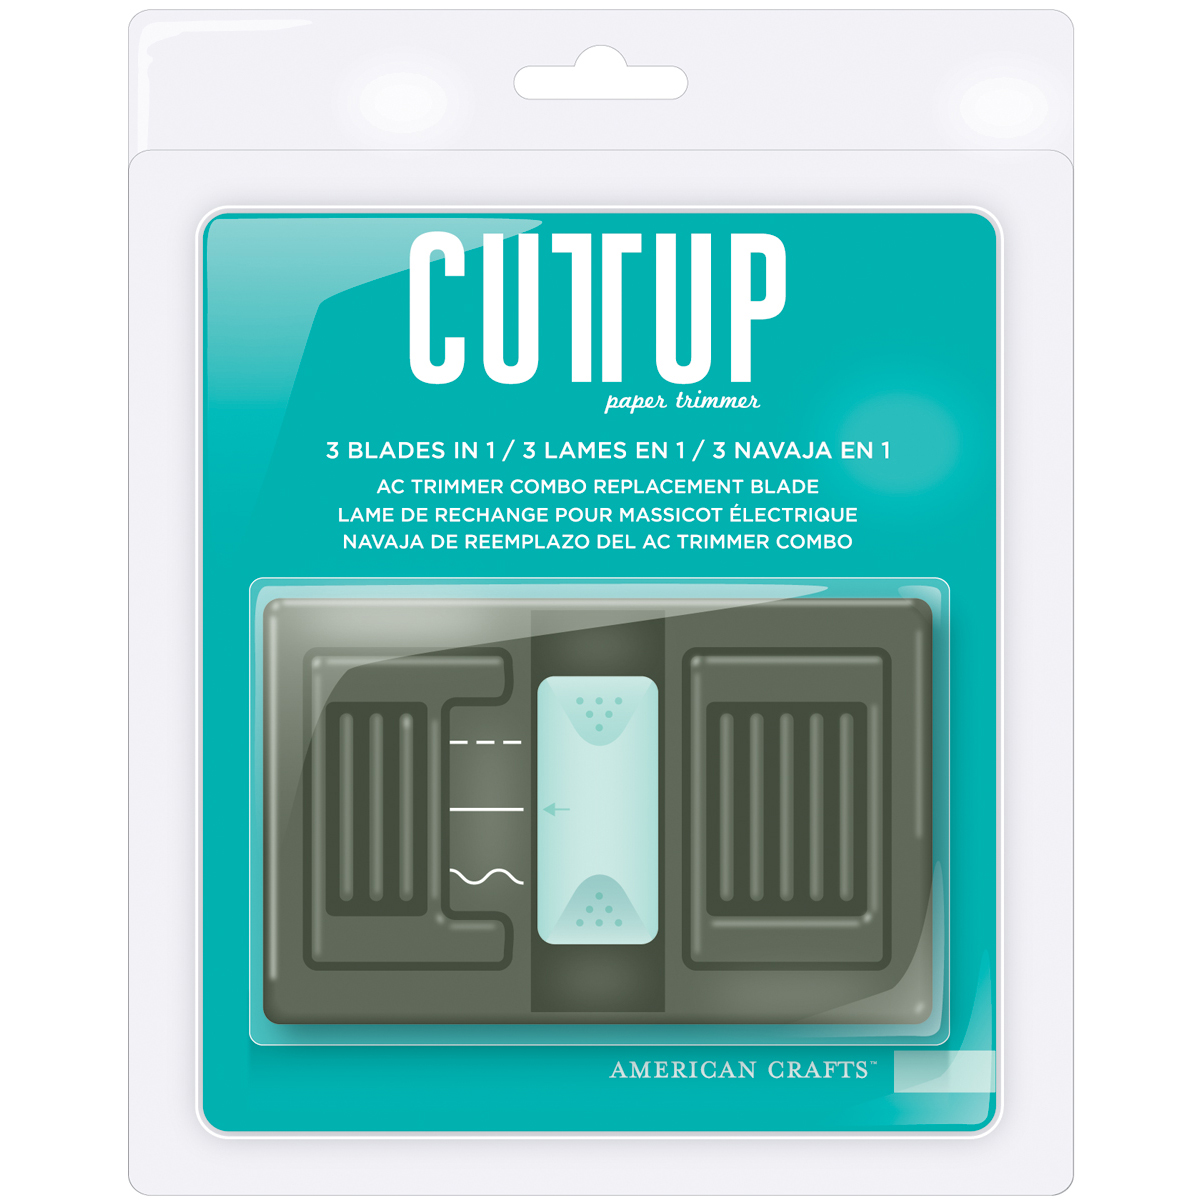 Cutup Combo Trimmer Replacement Blade-For AC90703